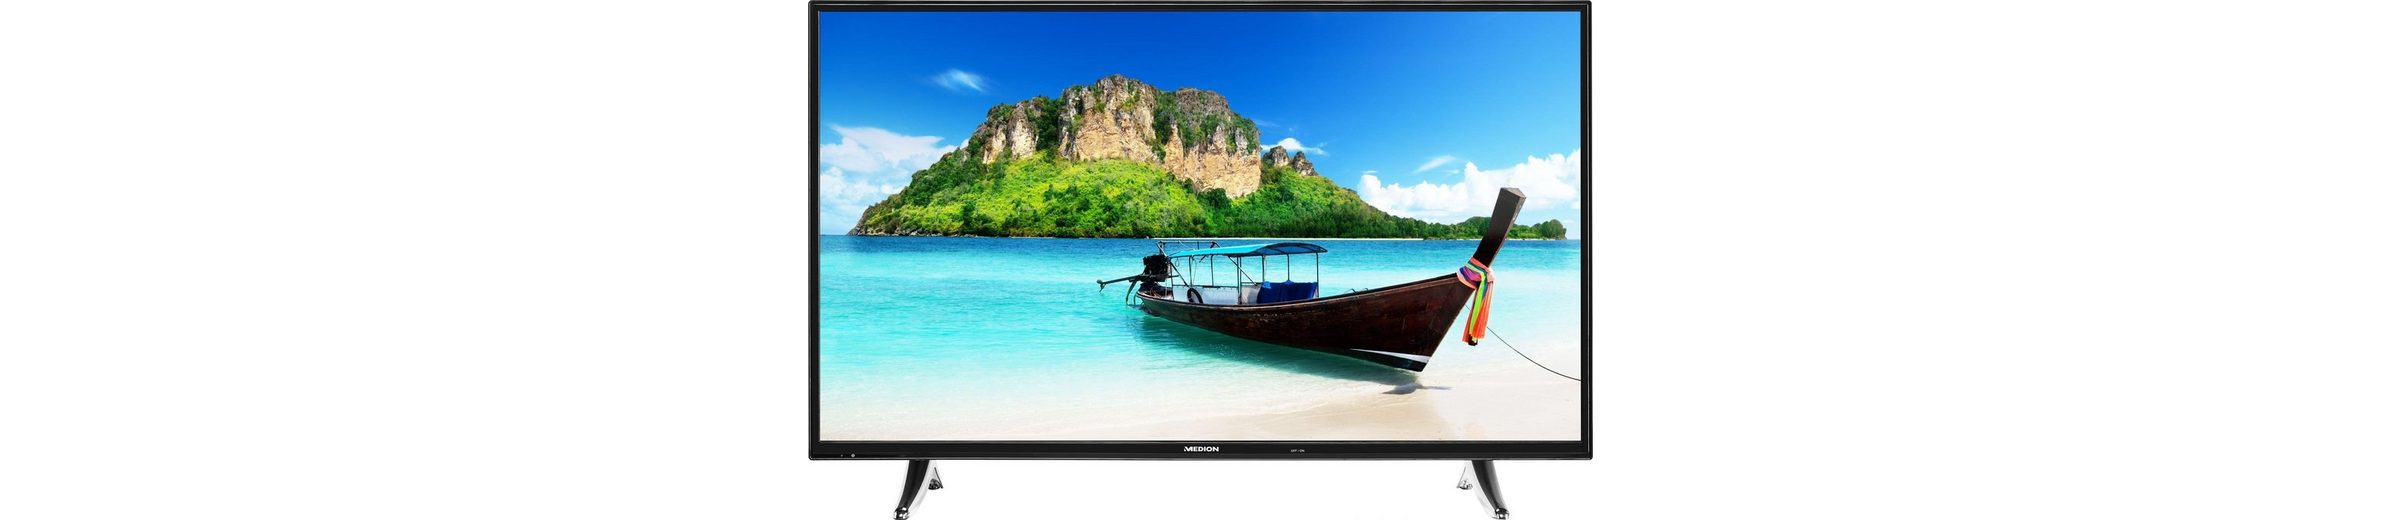 Medion® Life P18072 (MD 31093), LED Fernseher, 123 cm (49 Zoll), 1080p (Full HD), Smart-TV